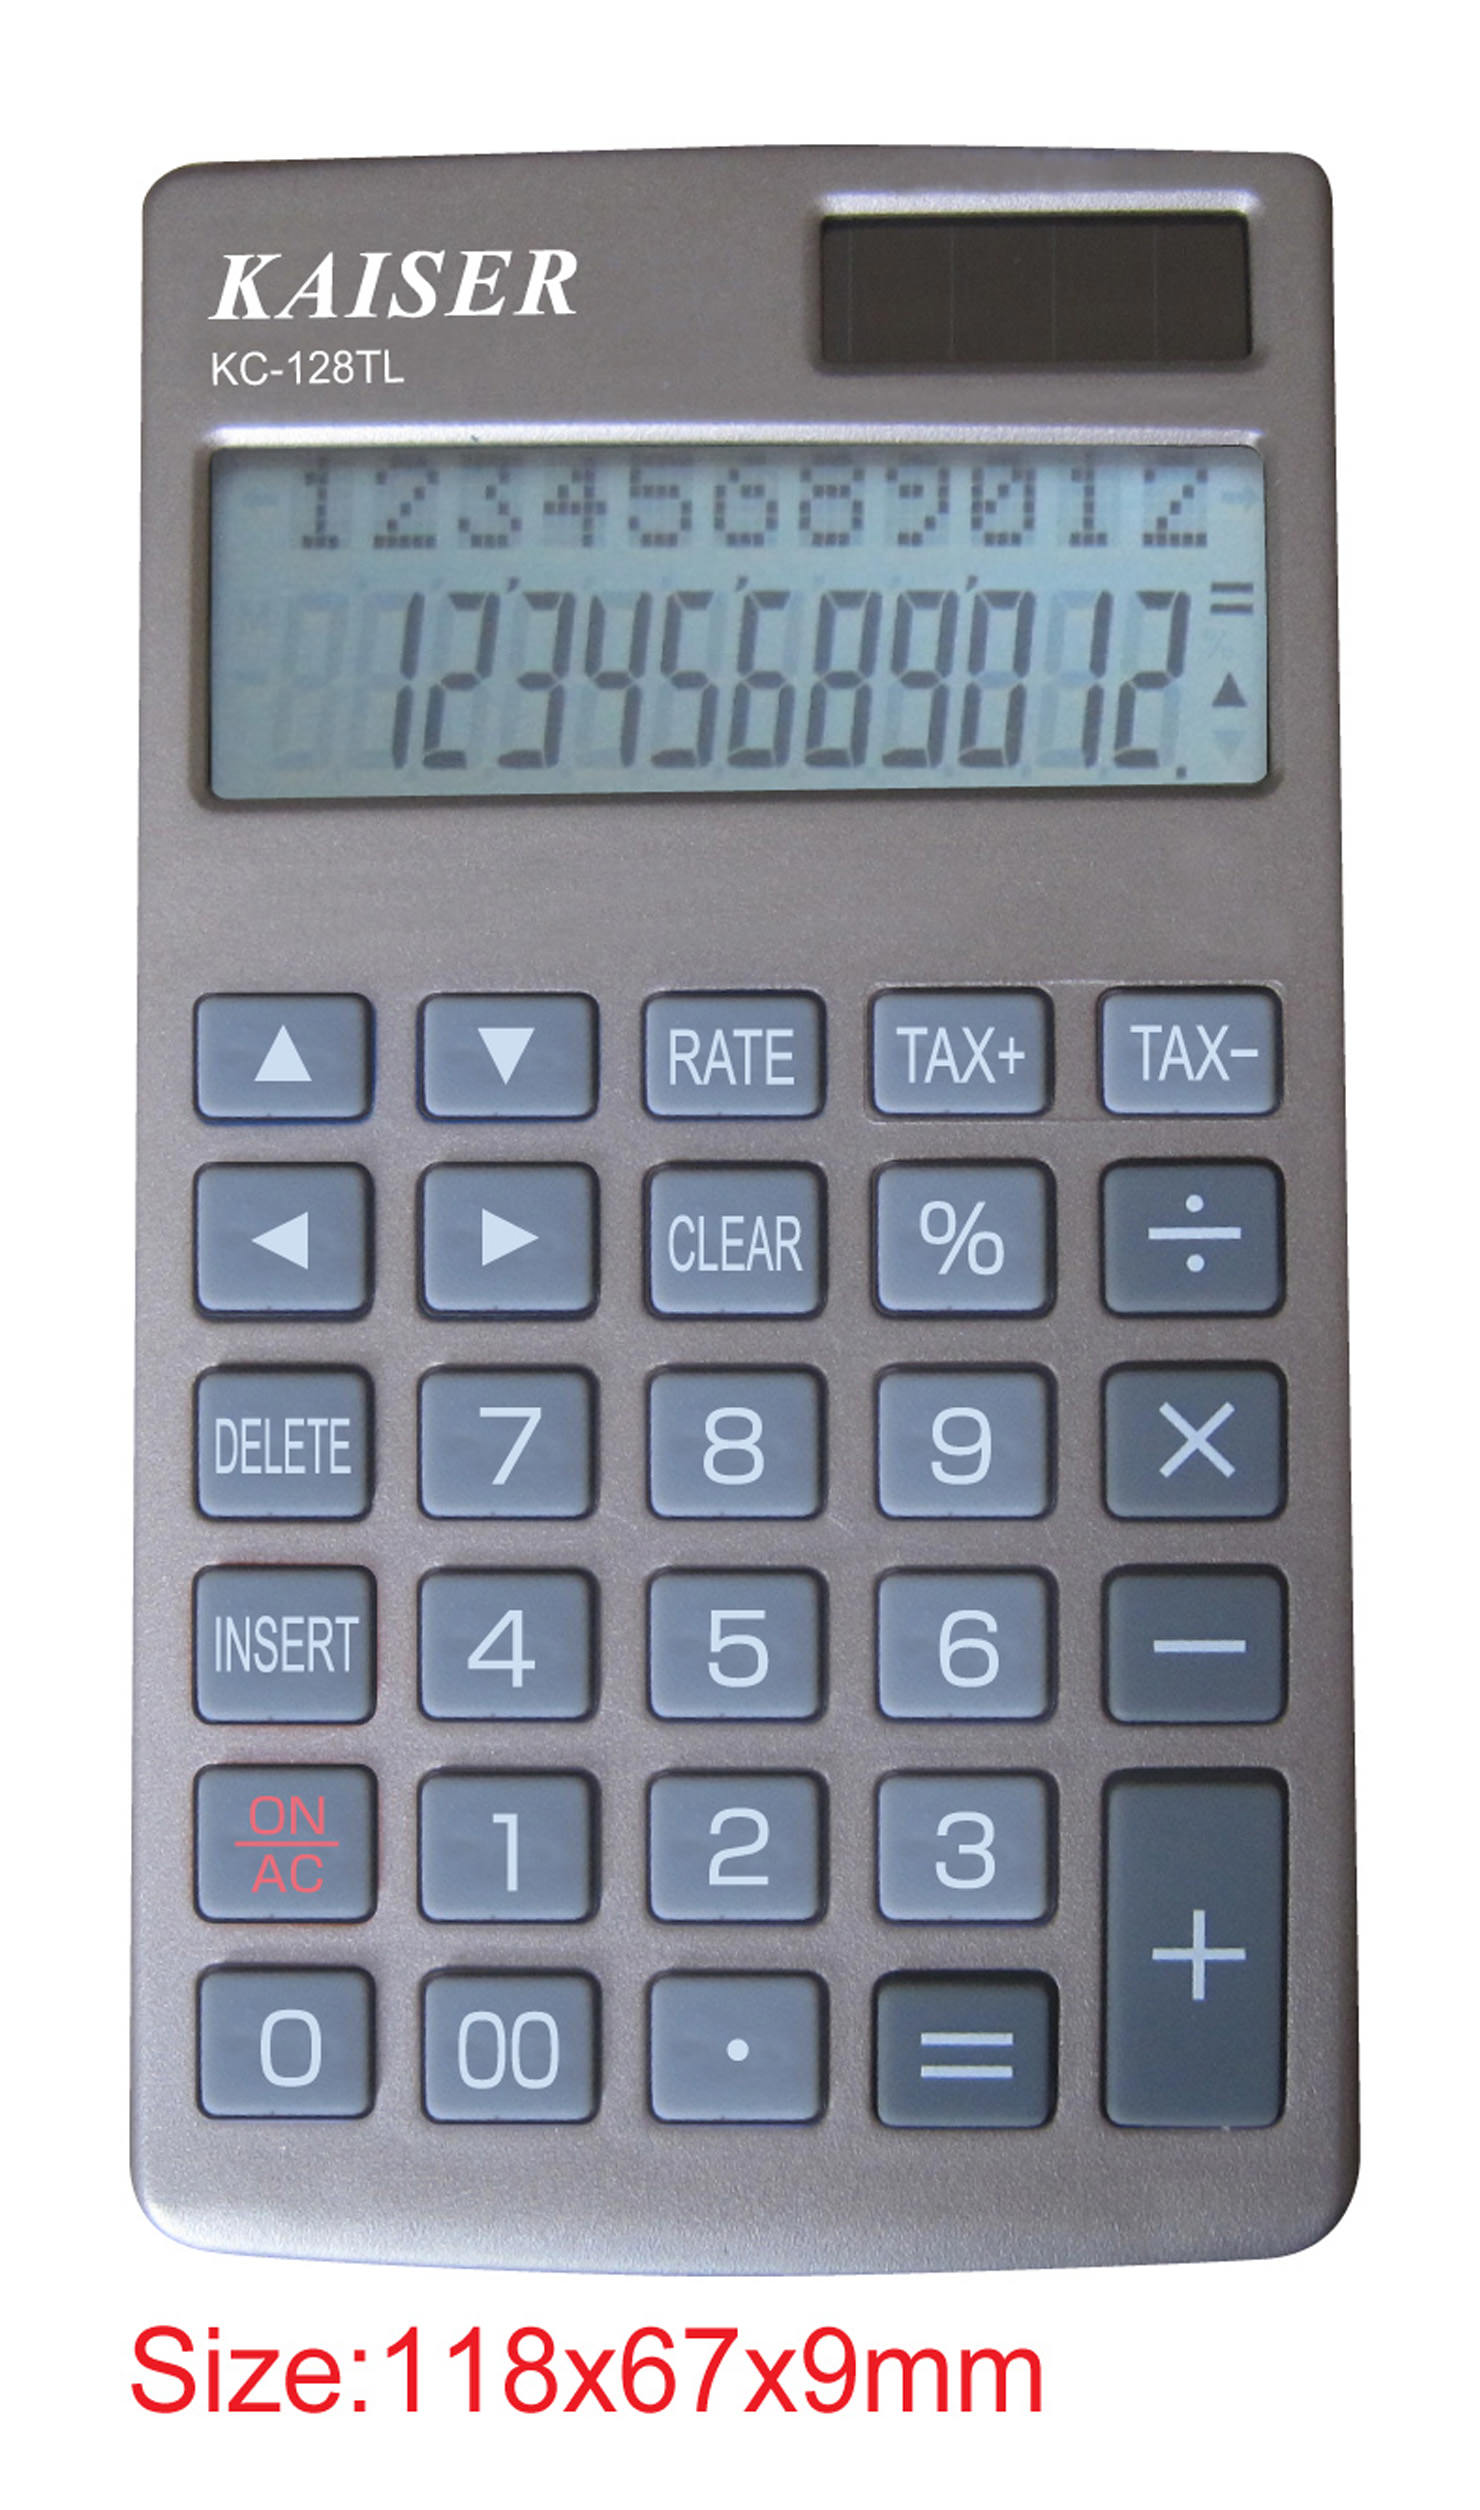 2-line 12 digit handy calculator